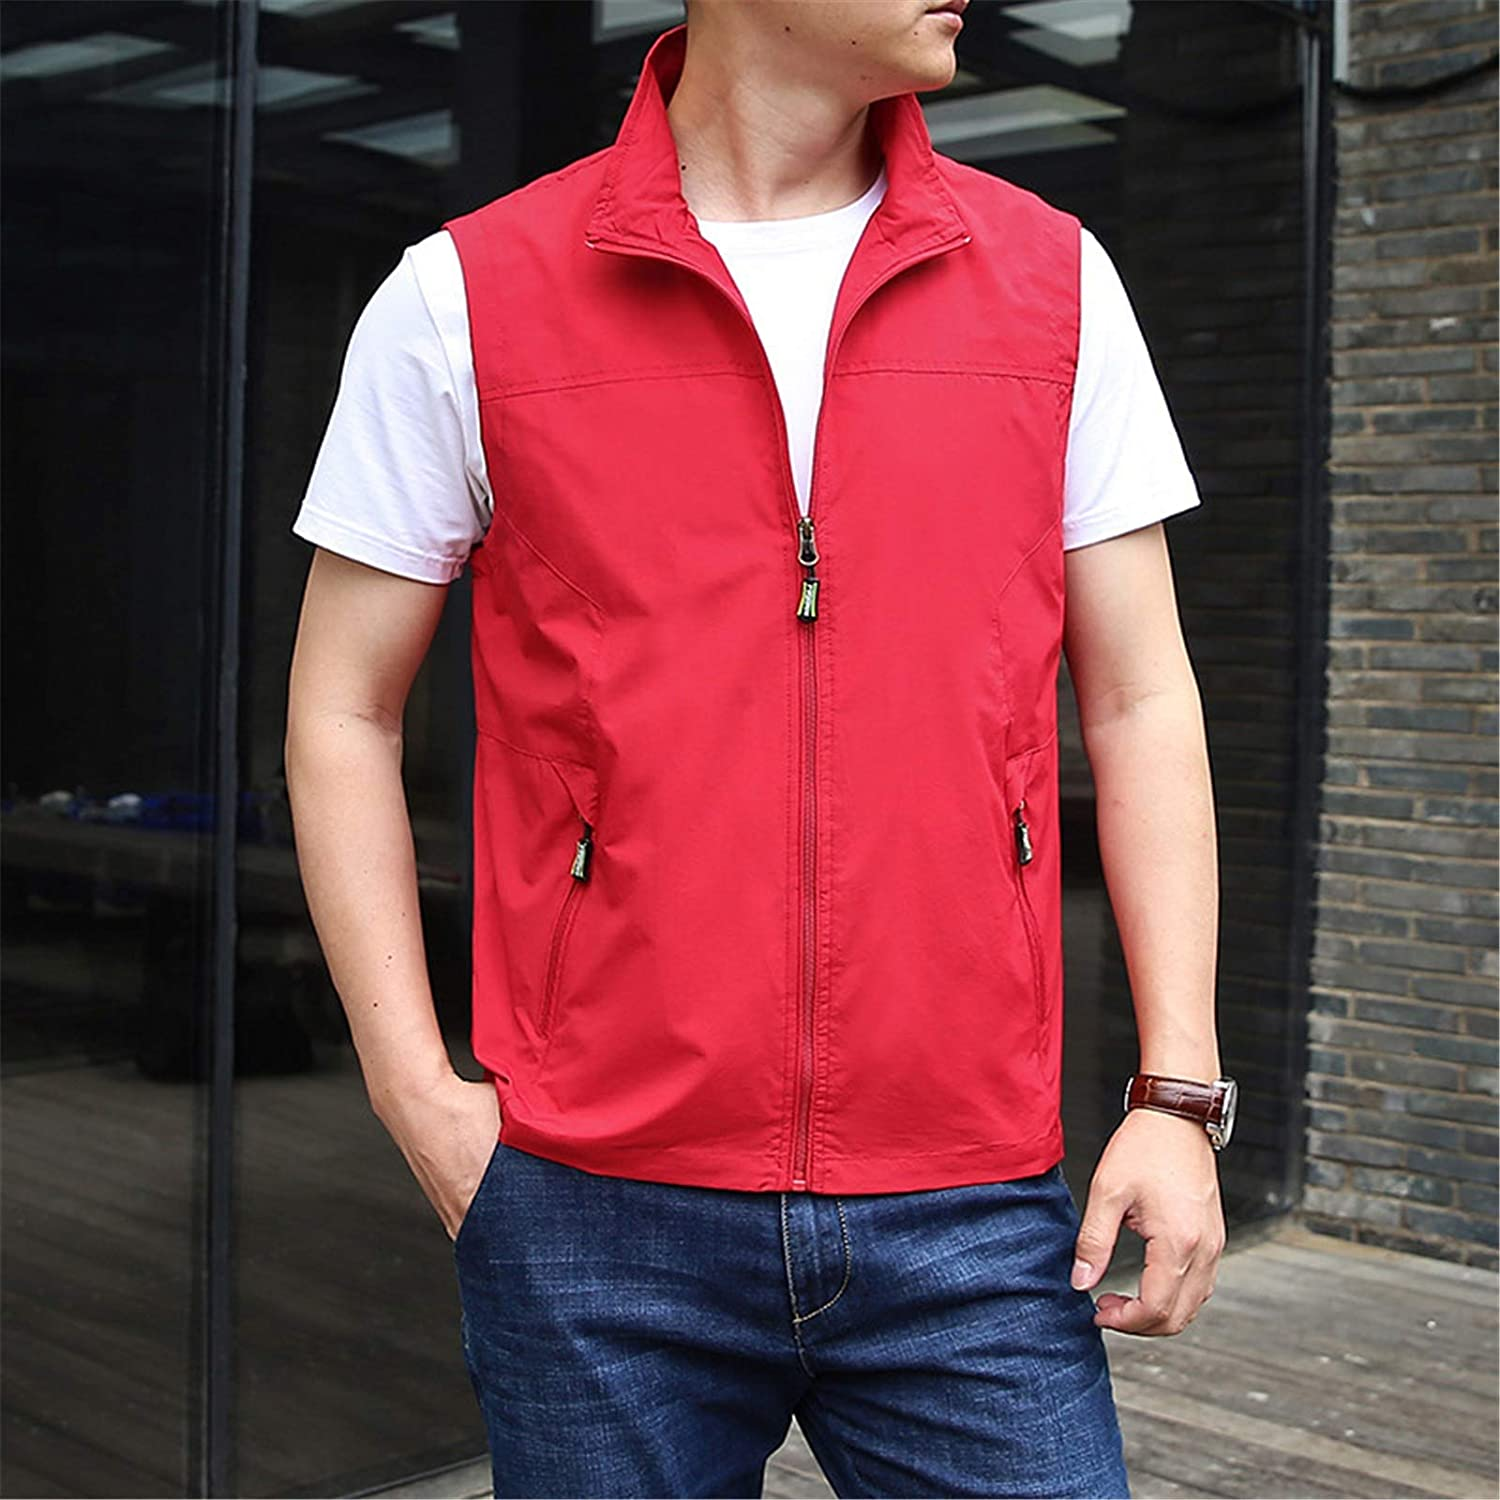 Men's Soft and Cozy Vests, in 6 Colors: Sizes M~6XL,for Outdoor, Travel, Casual, Work, Lightweight Vest,Red,5XL